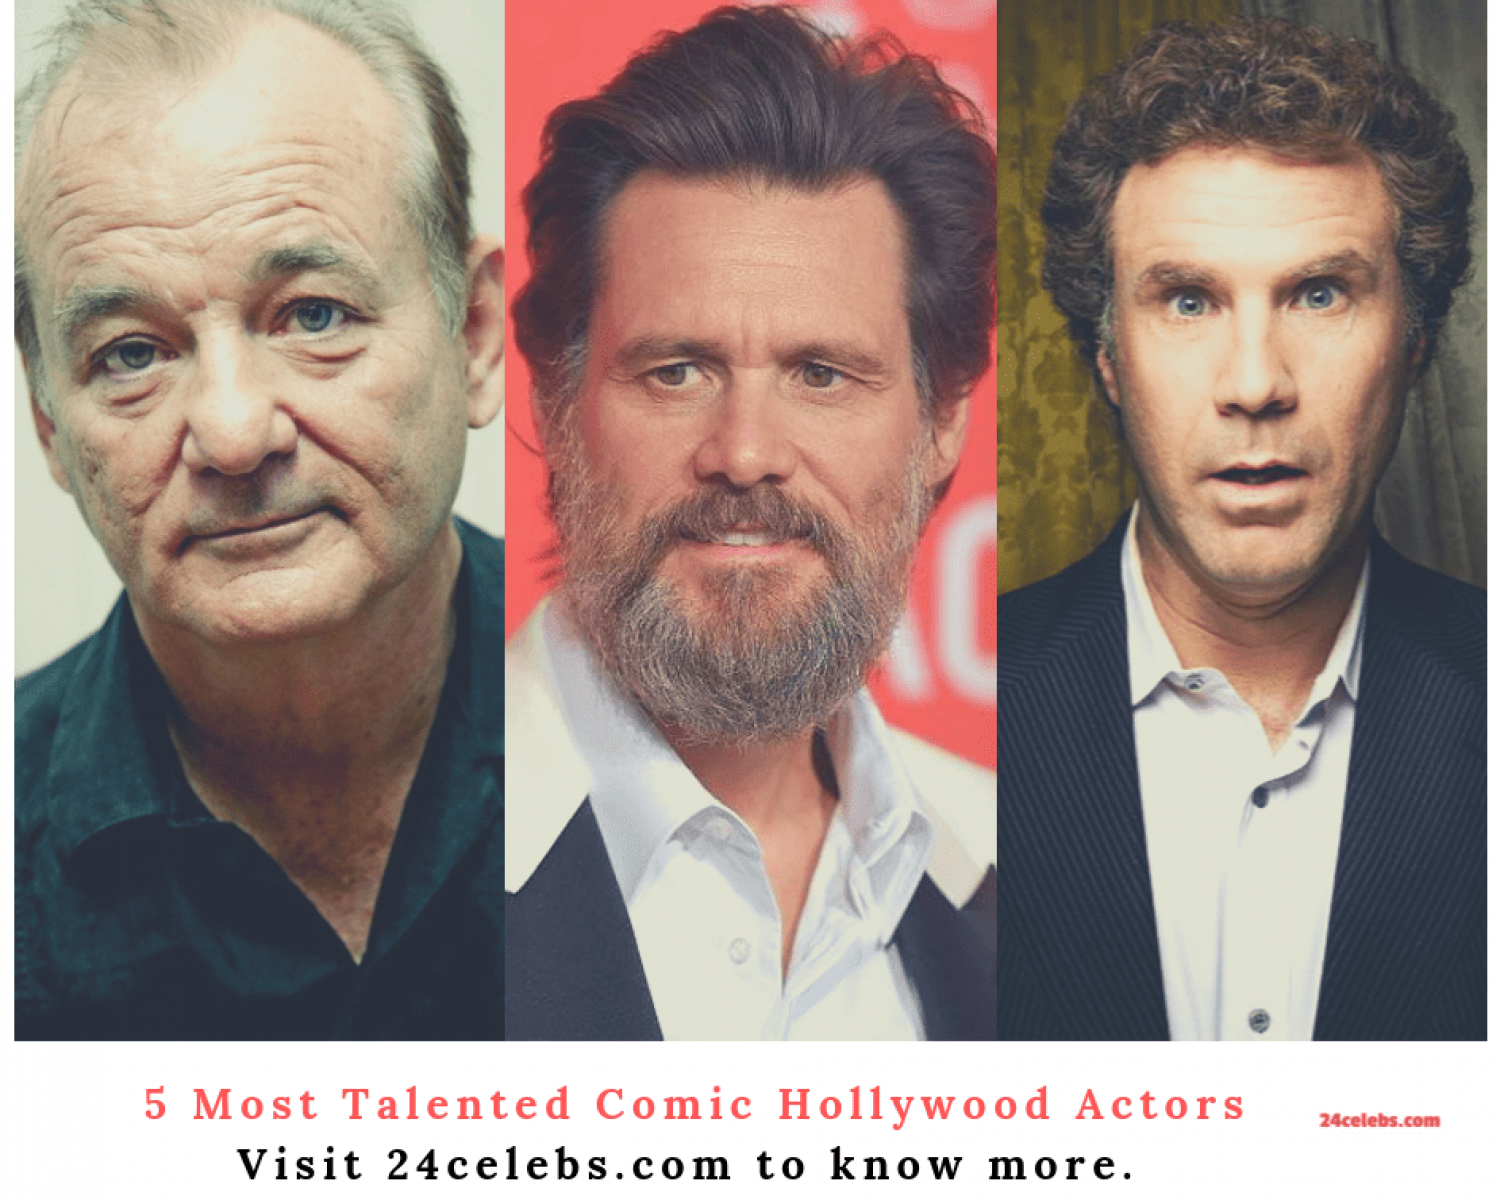 5 Most Talented Comic Hollywood Actors Infographic